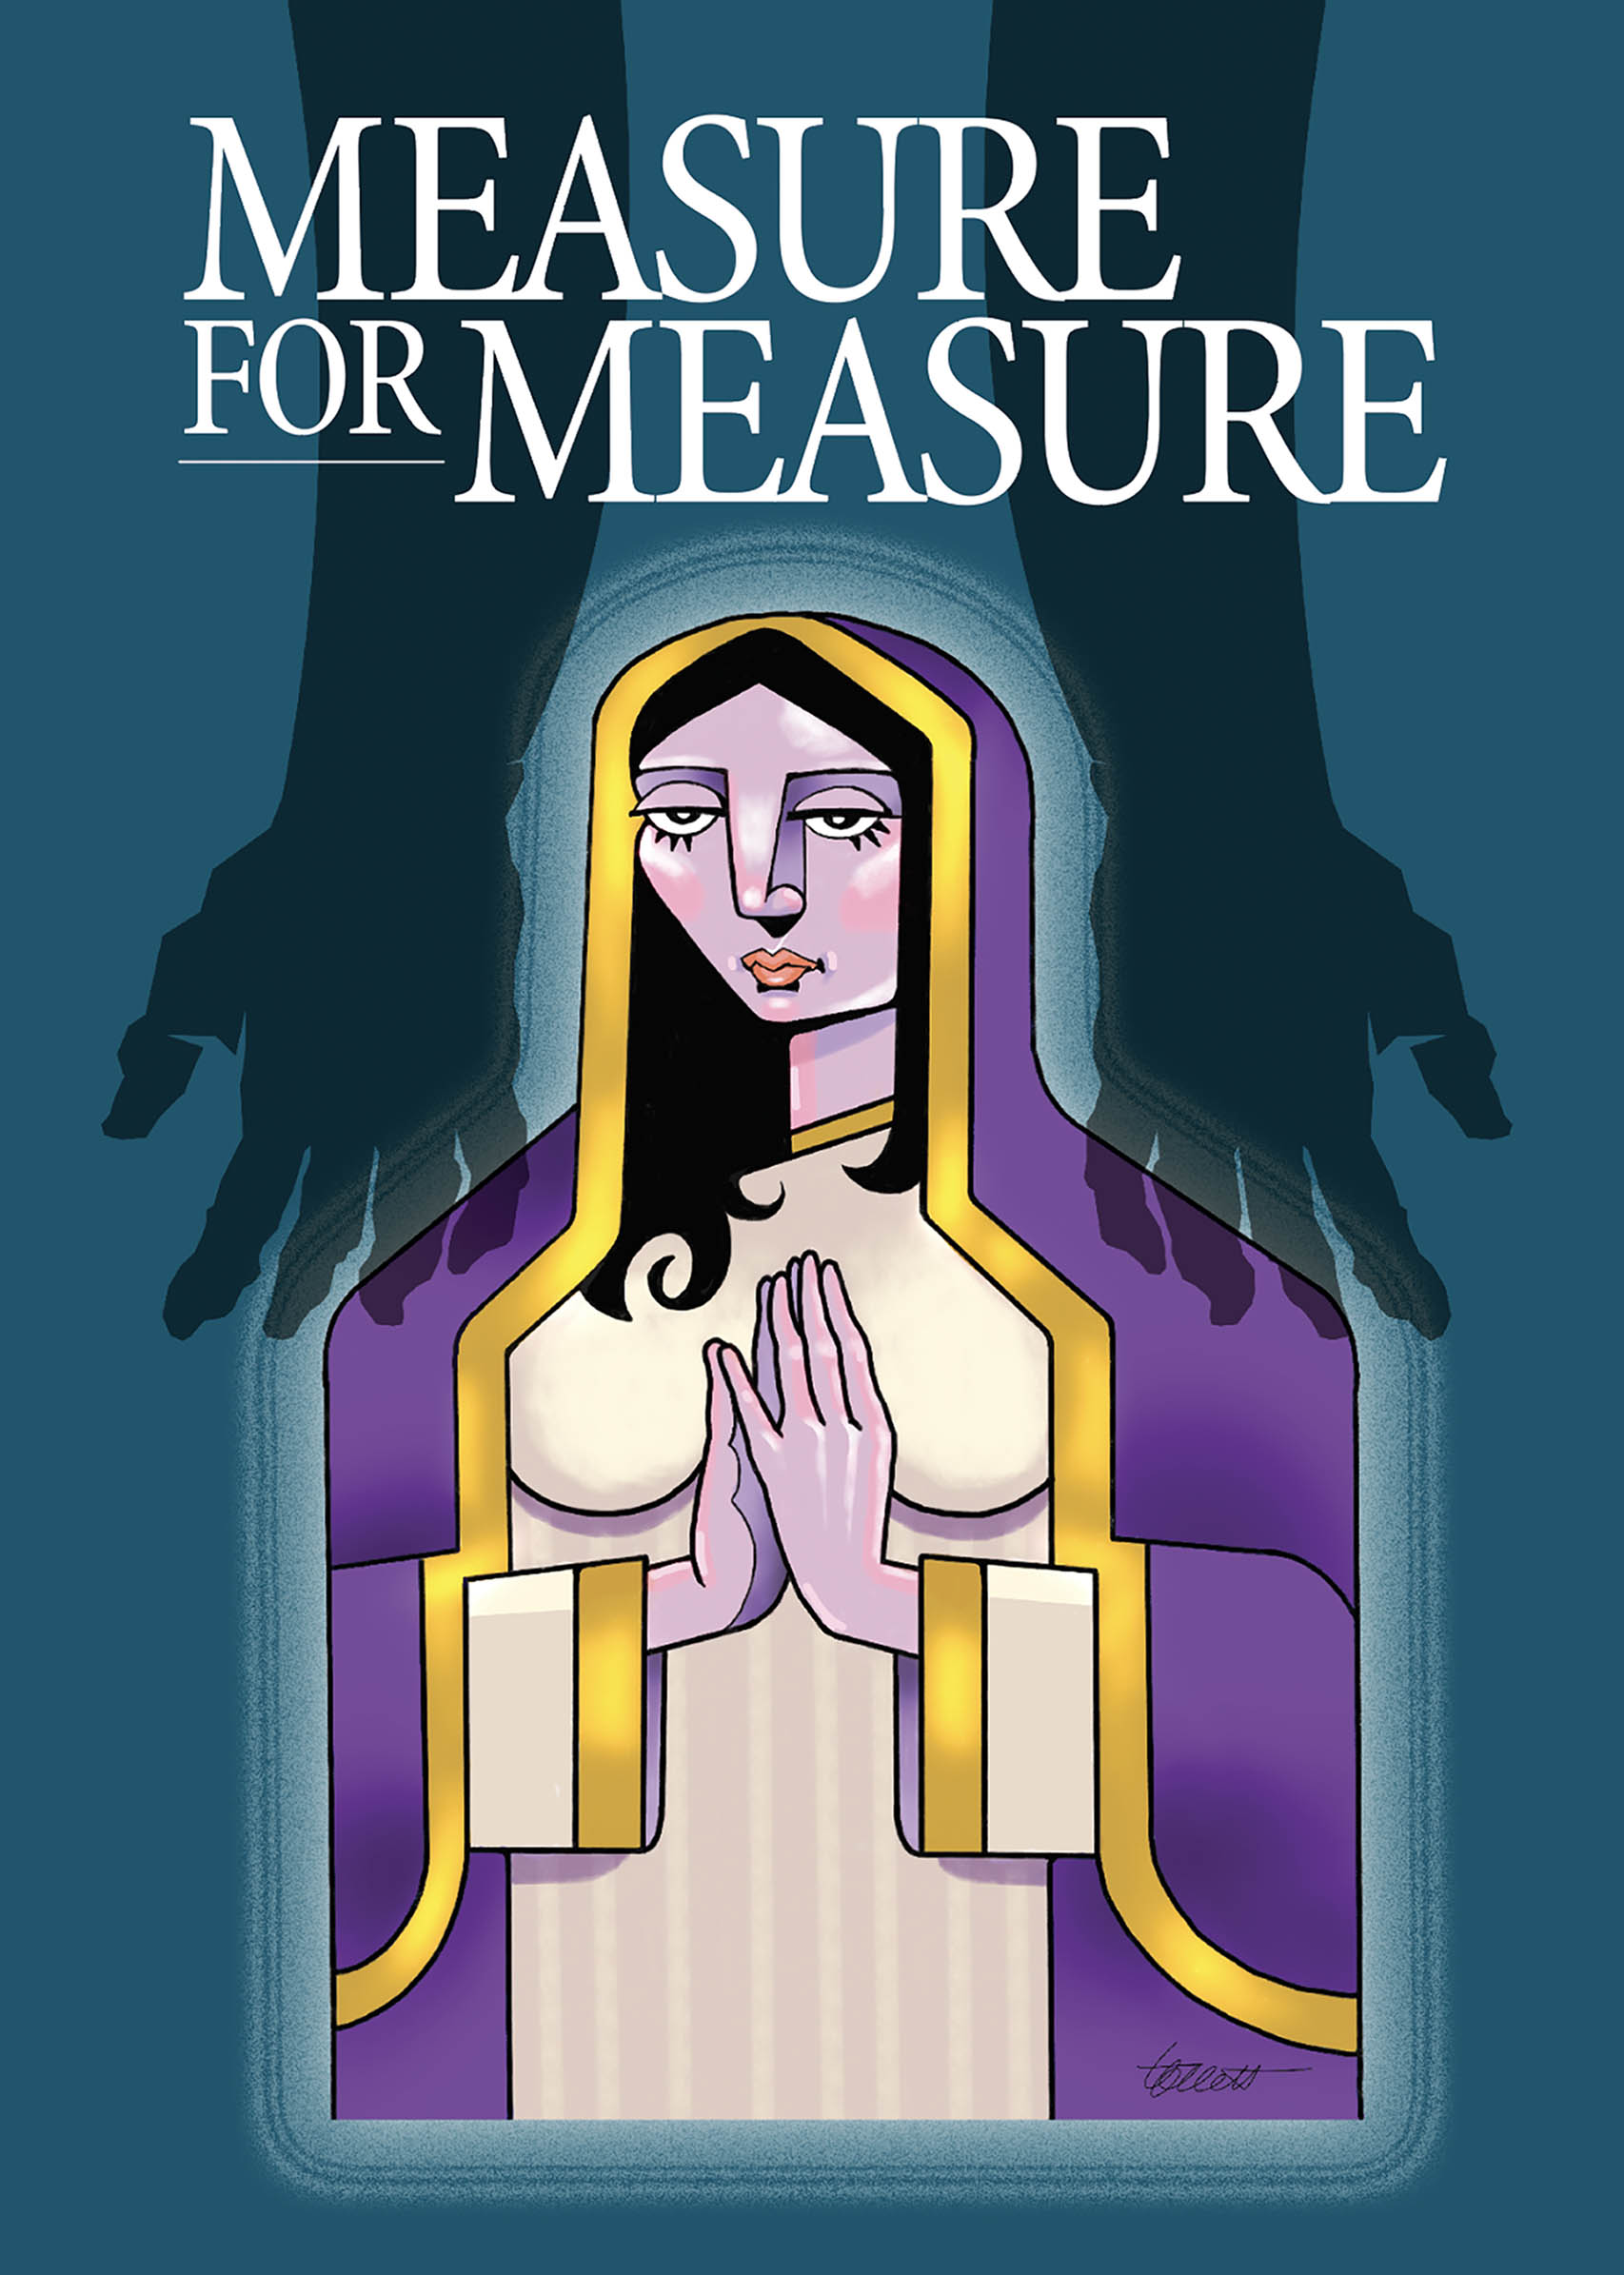 Measure for Measure image.jpg